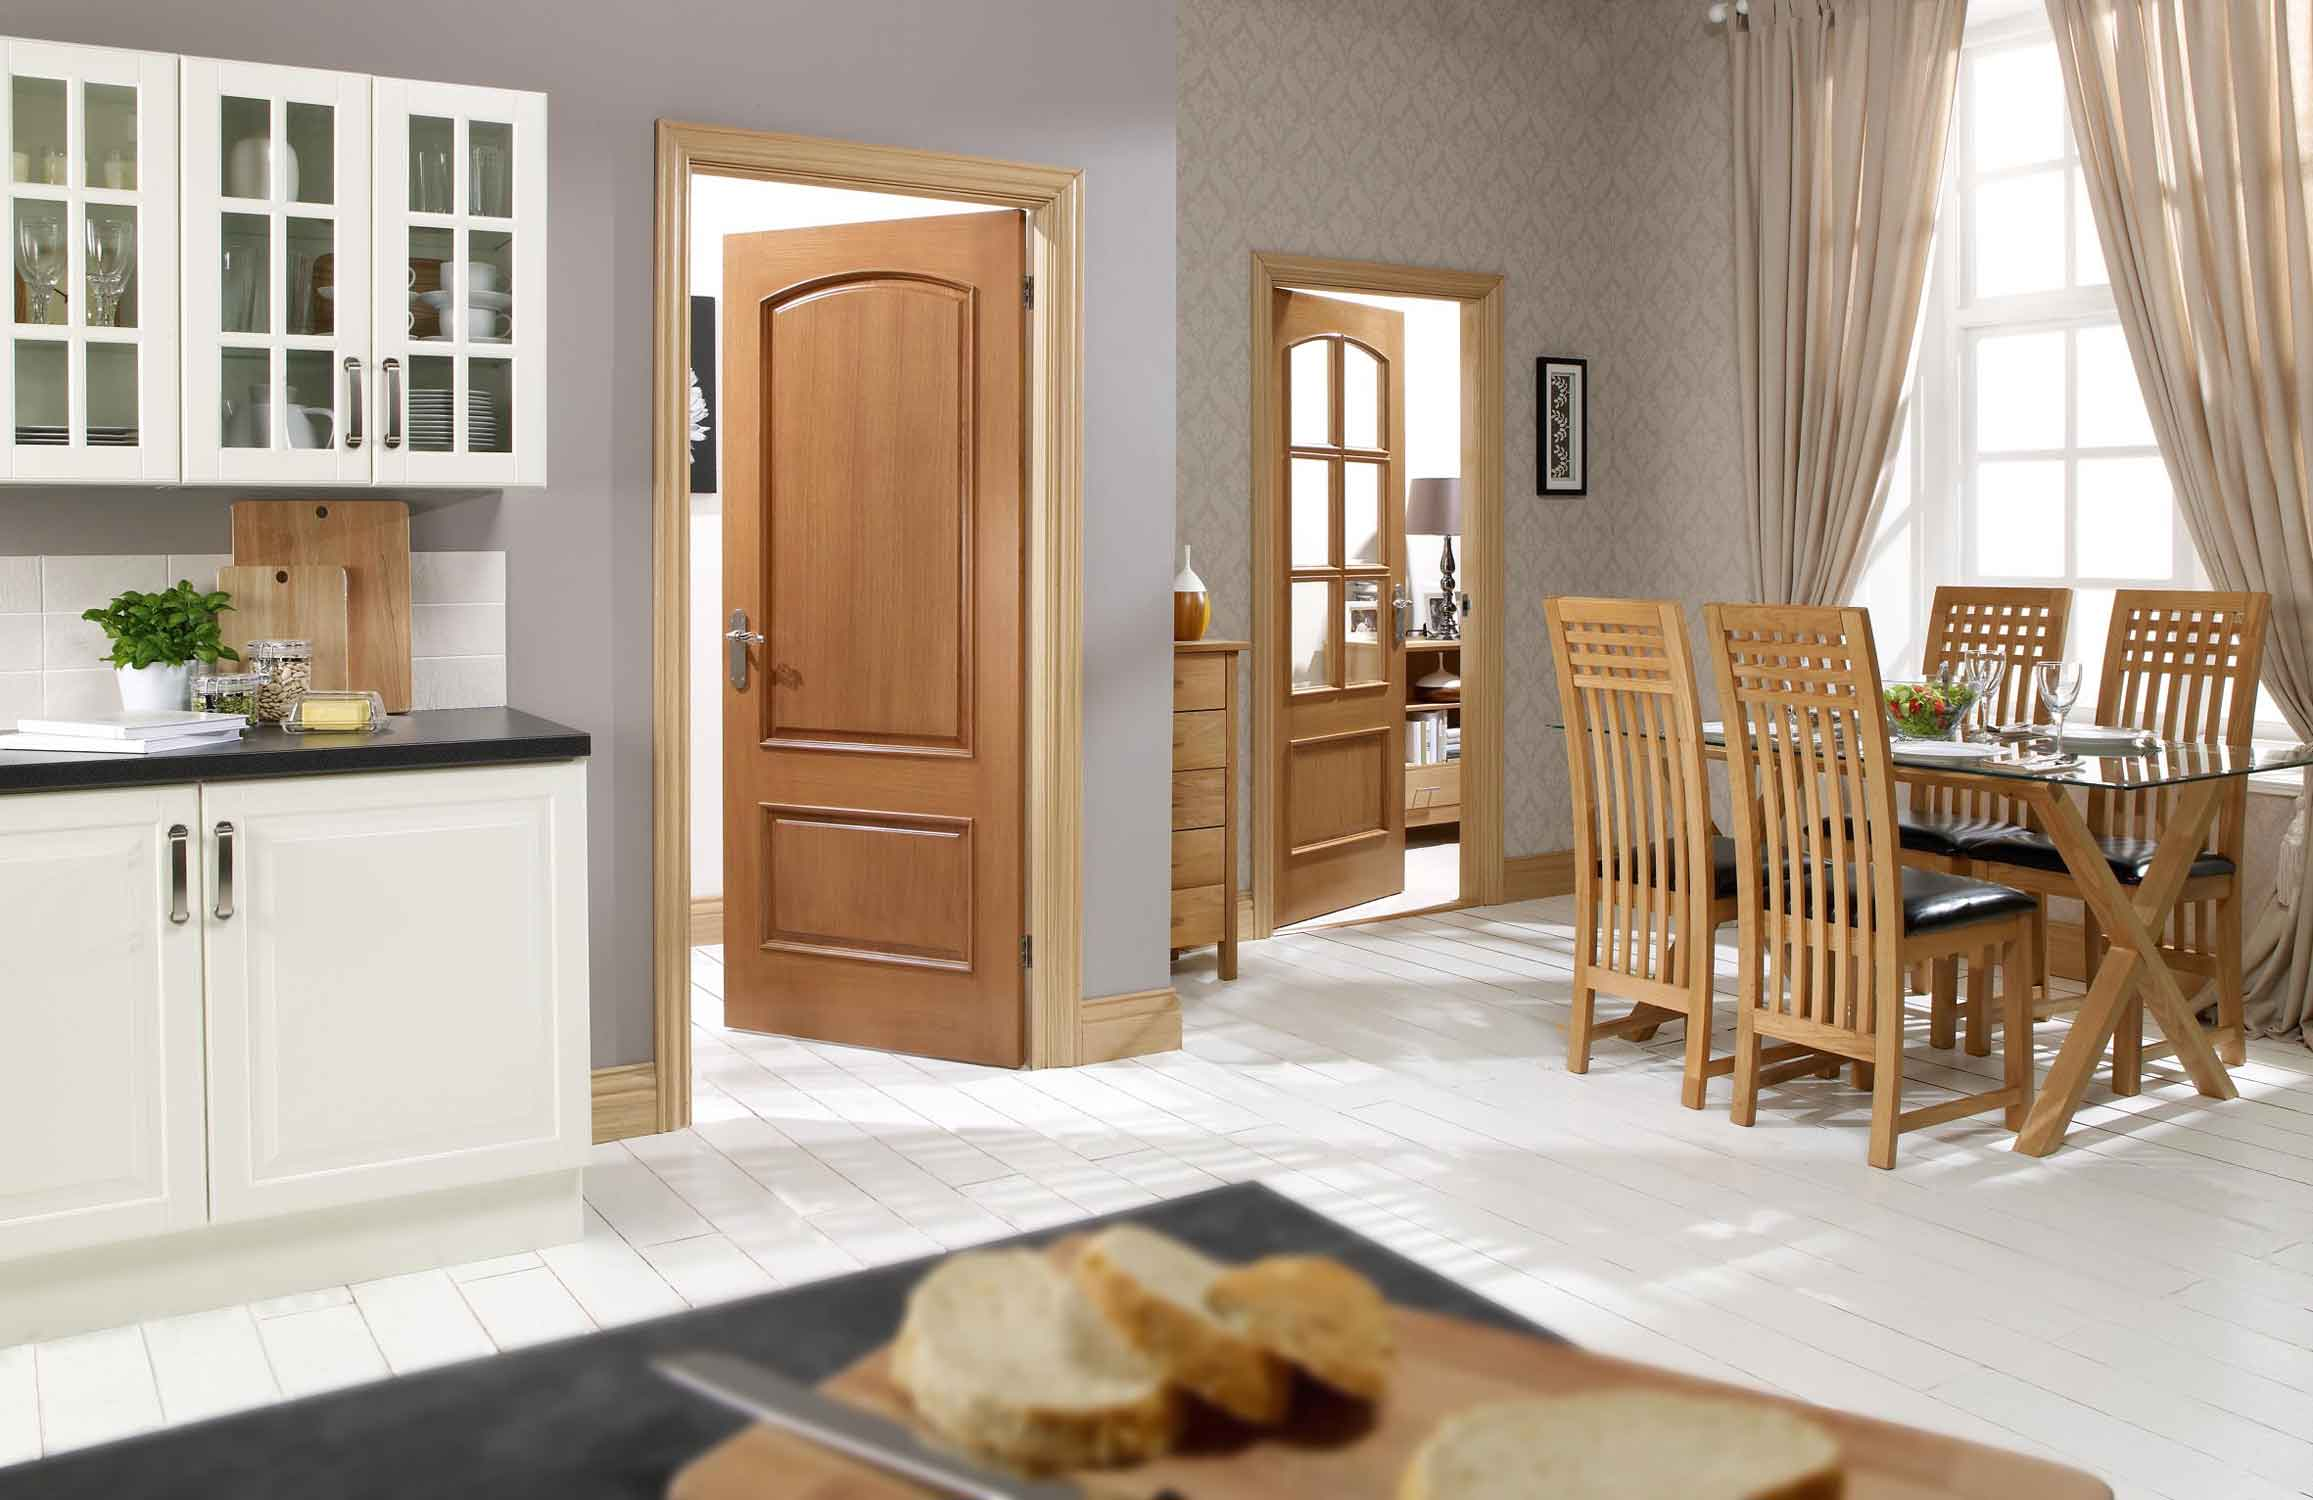 Solid core raised panel interior doors are frequently used furniture elements